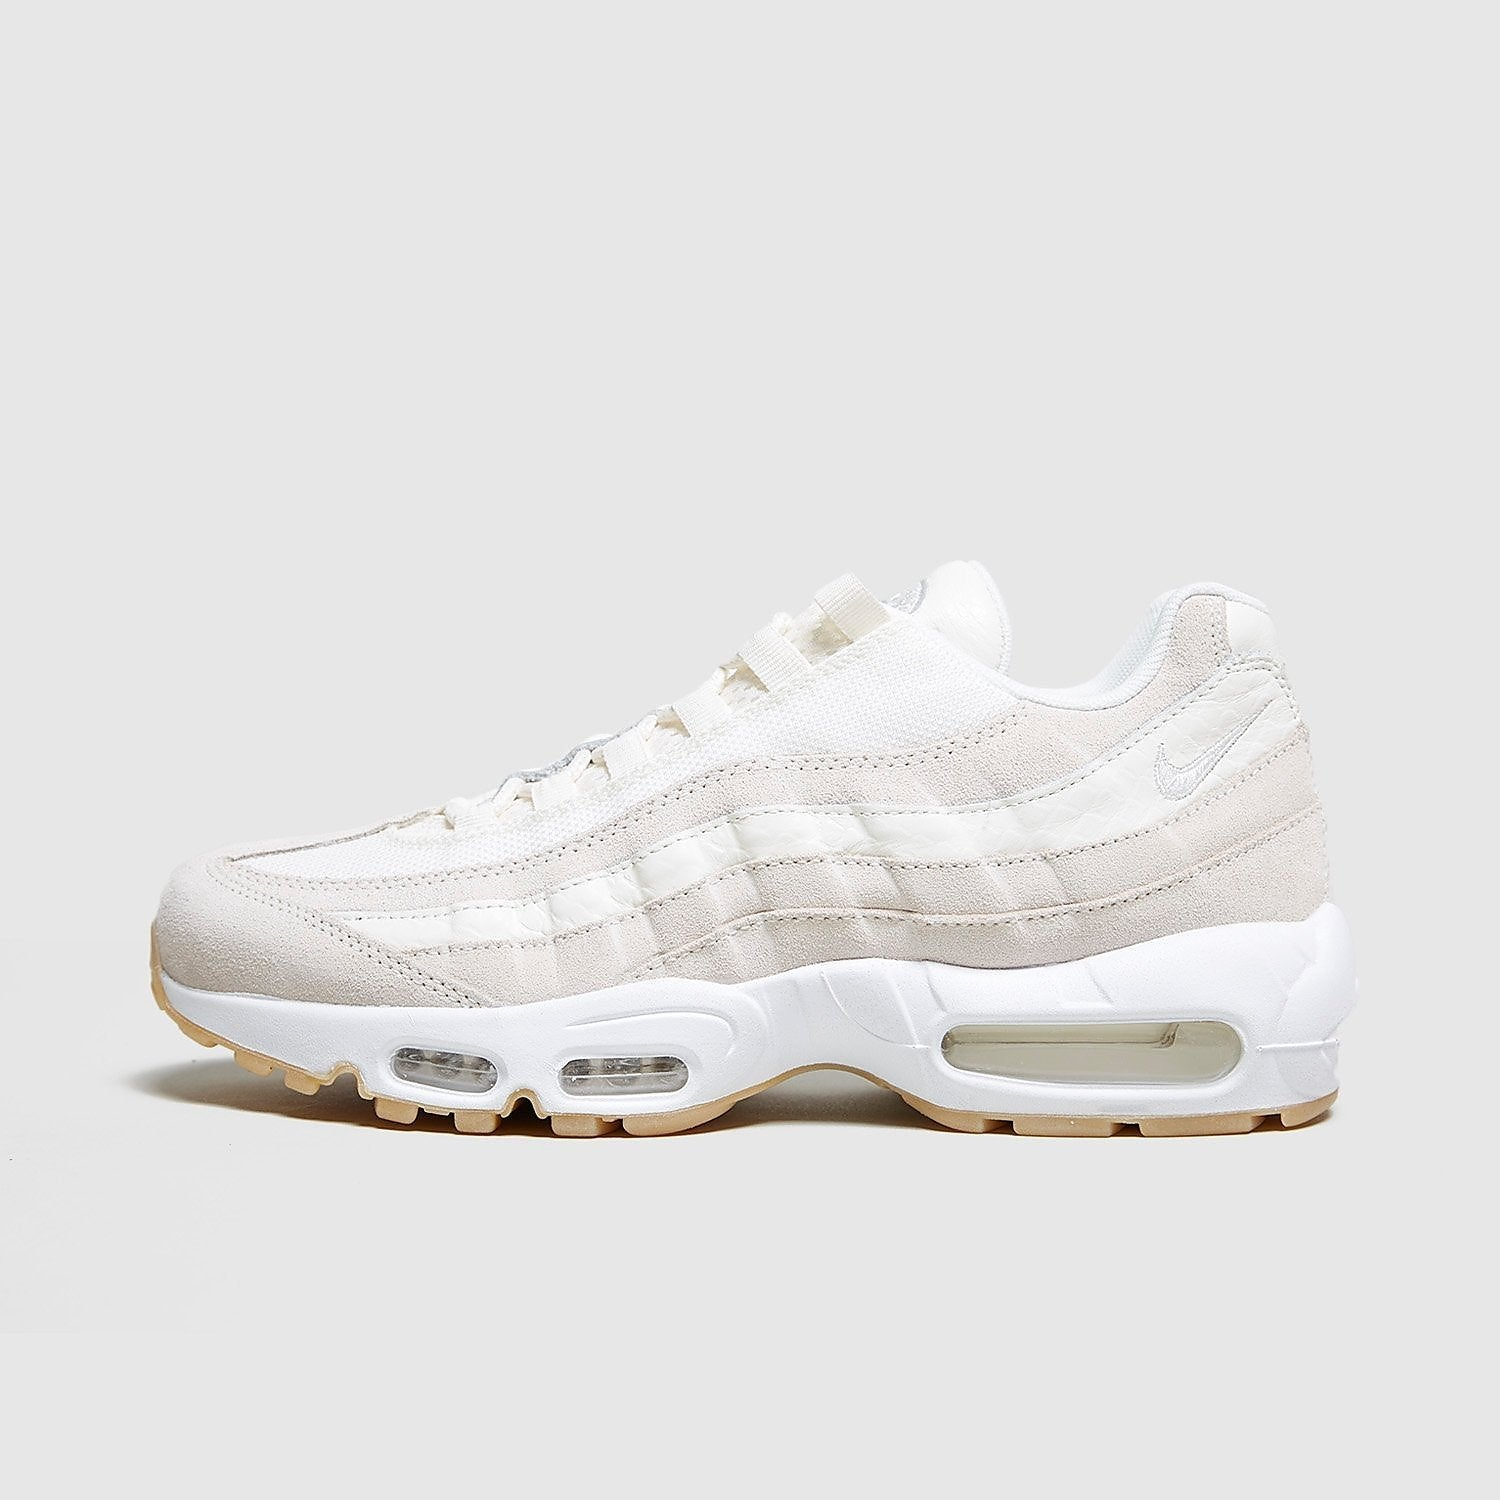 best website fd4d4 c7eee Nike Nike Air Max 95 Premium, White/White at Soleheaven Curated Collections